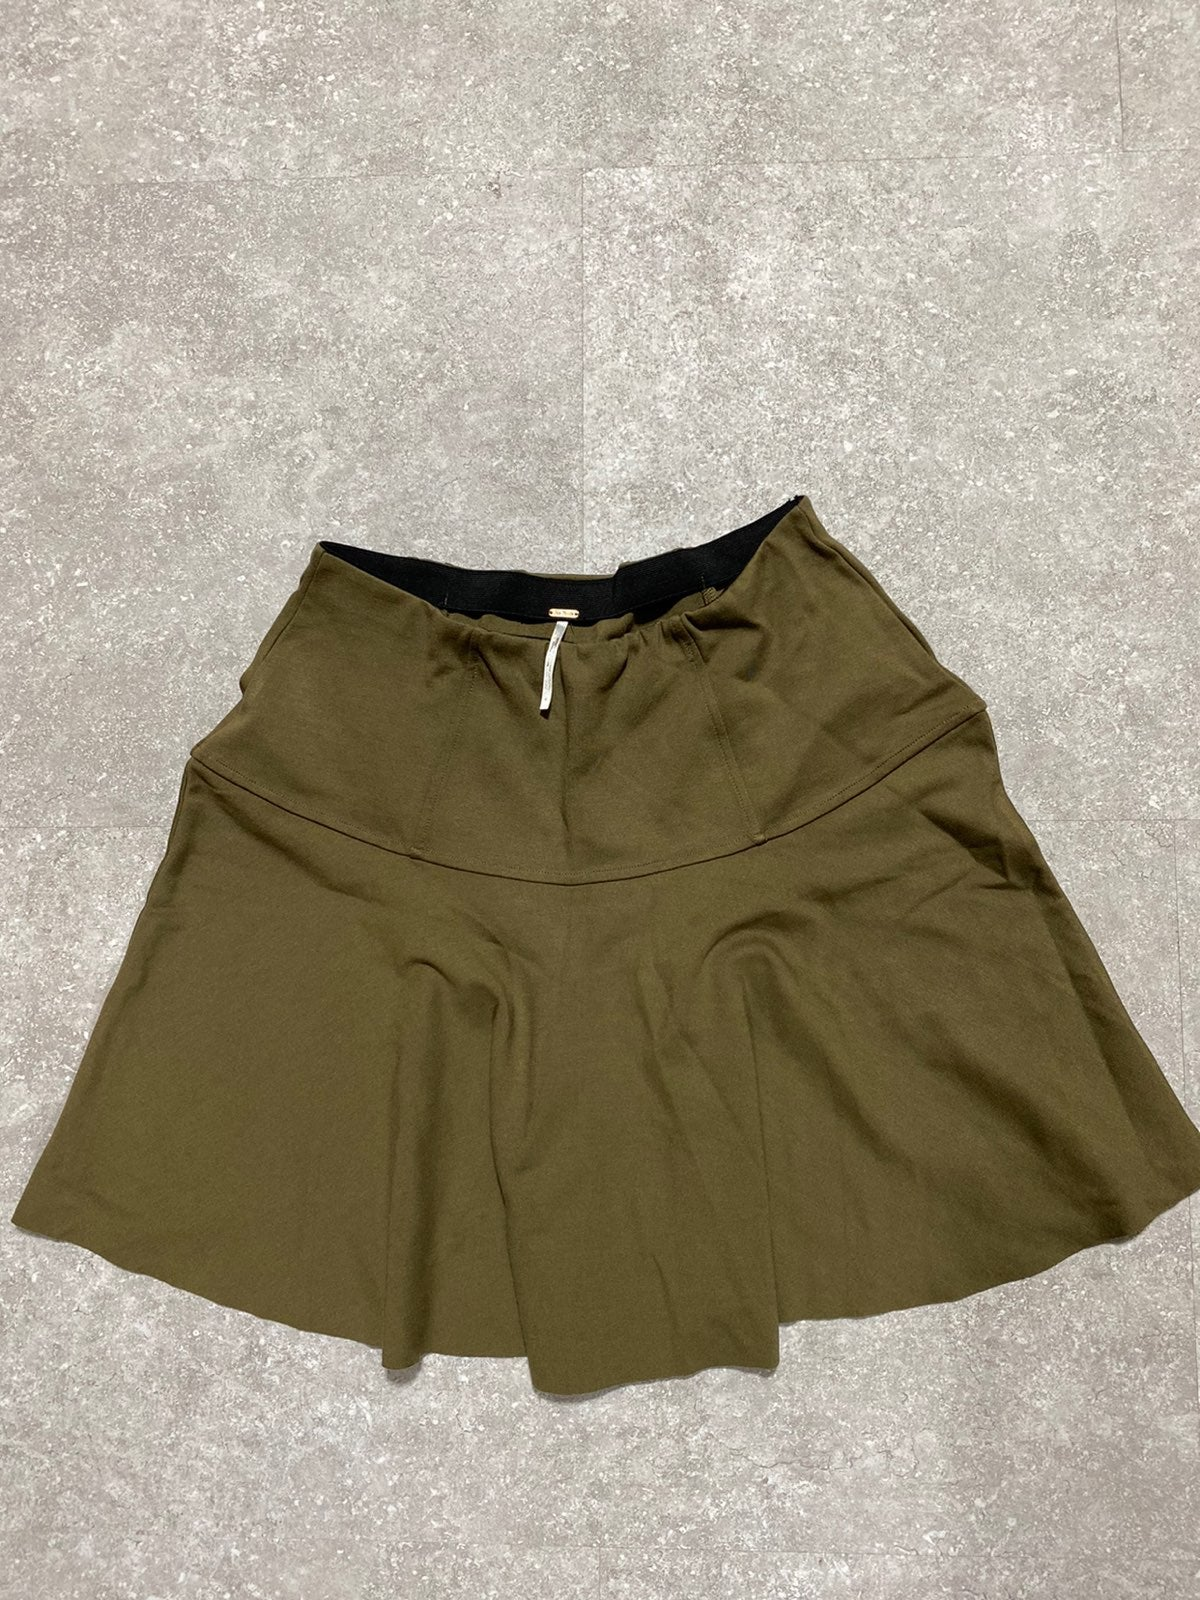 Free People Olive Green Skirt